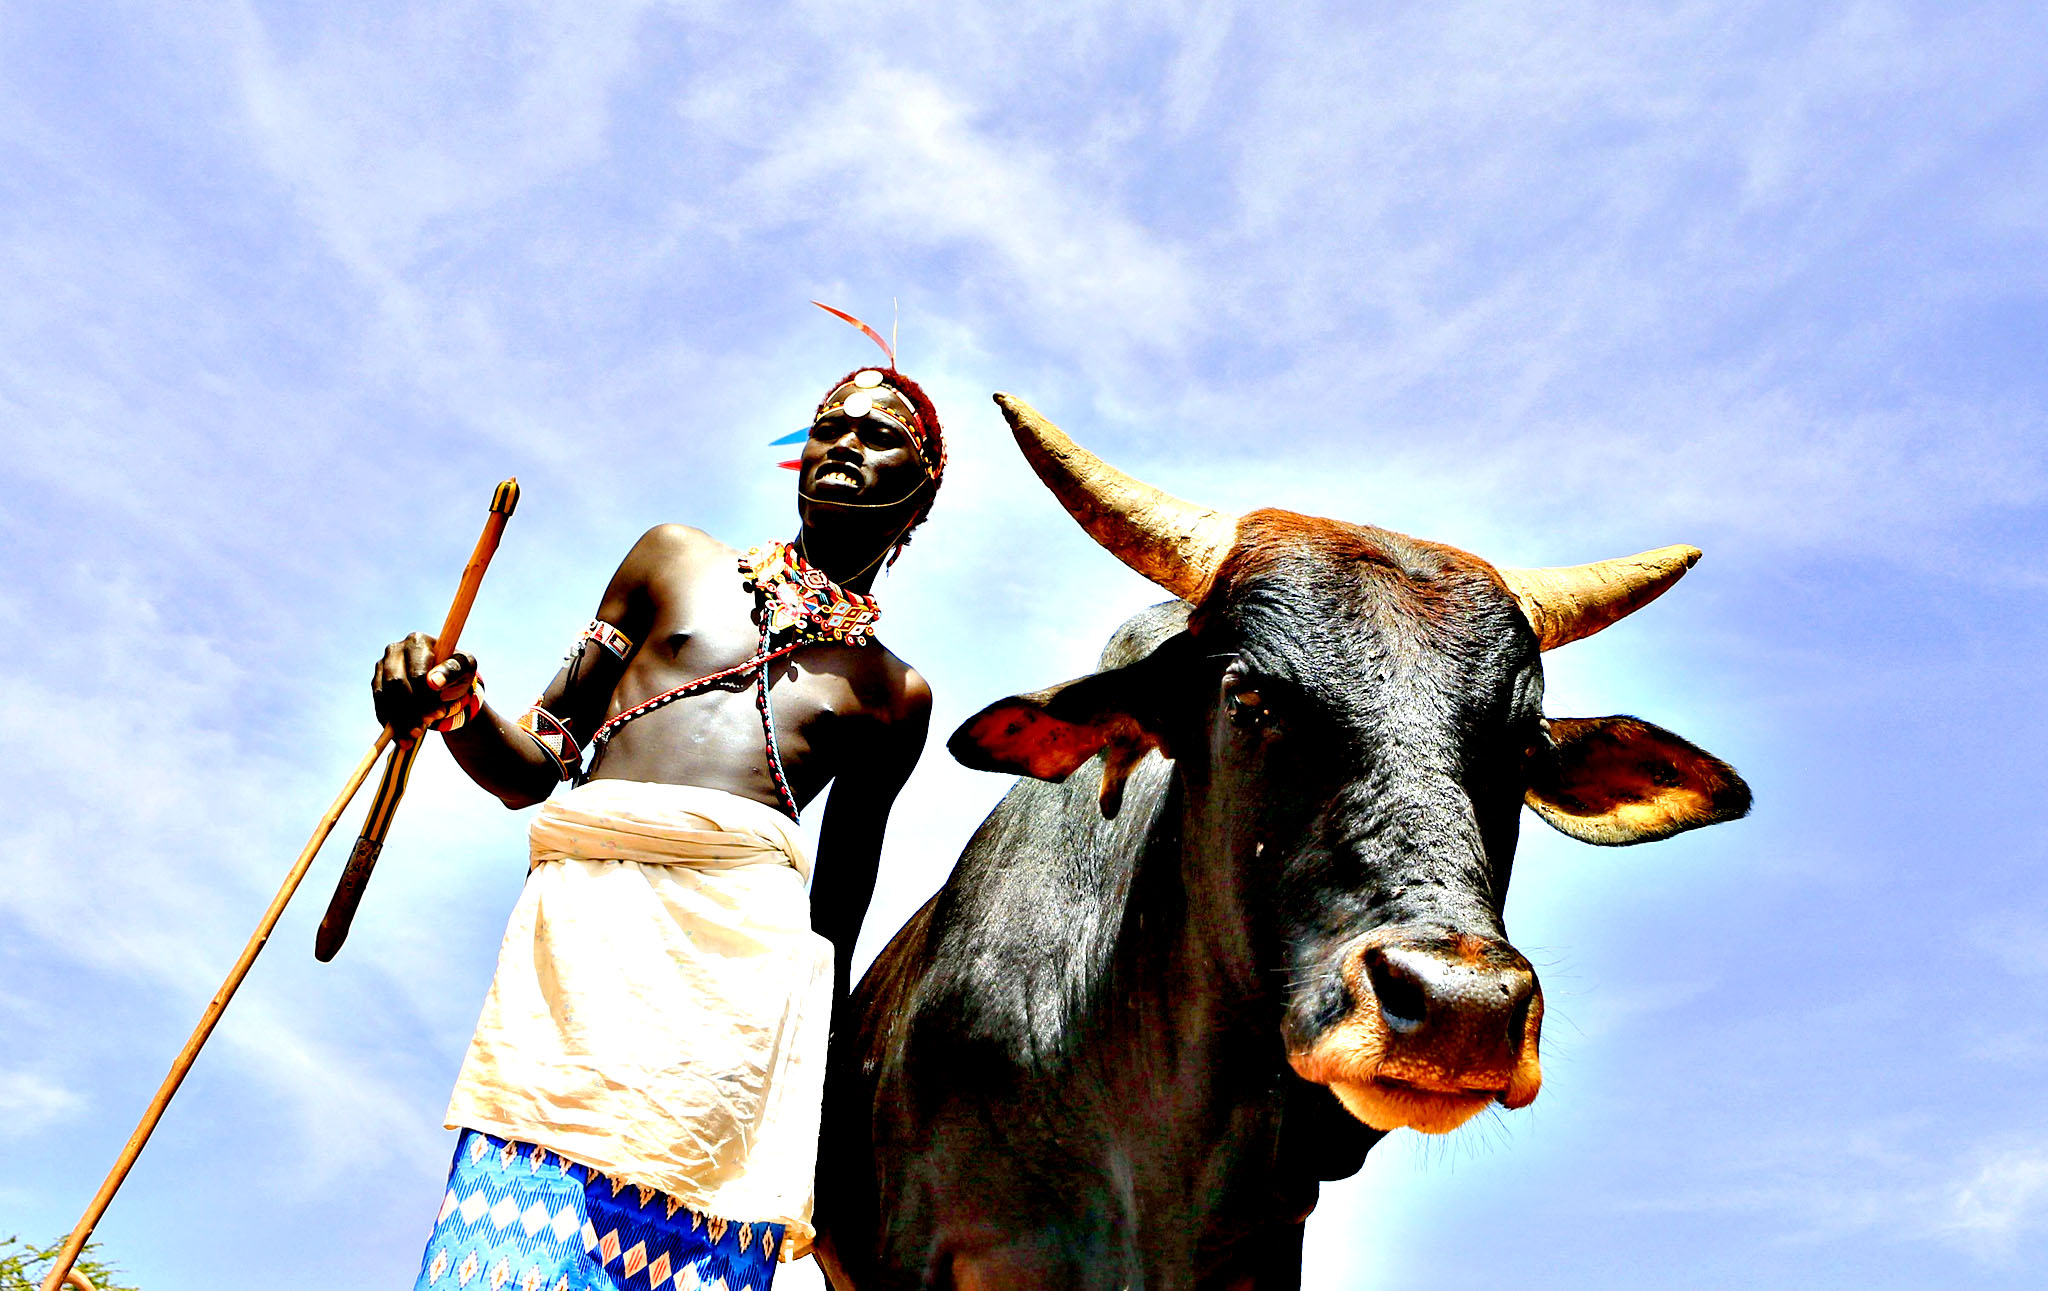 A Samburu moran stands next to a fattened black bull in the remote northern Kenya village of Wamba in Samburu November 21, 2013. British High Commissioner to Kenya, Christian Turner, will accept the bull from the Namunyak women's group during a ceremony to bless and celebrate the birth of Britain's Prince George. Prince George is the son of Britain's Prince William and Catherine, the Duchess of Cambridge.